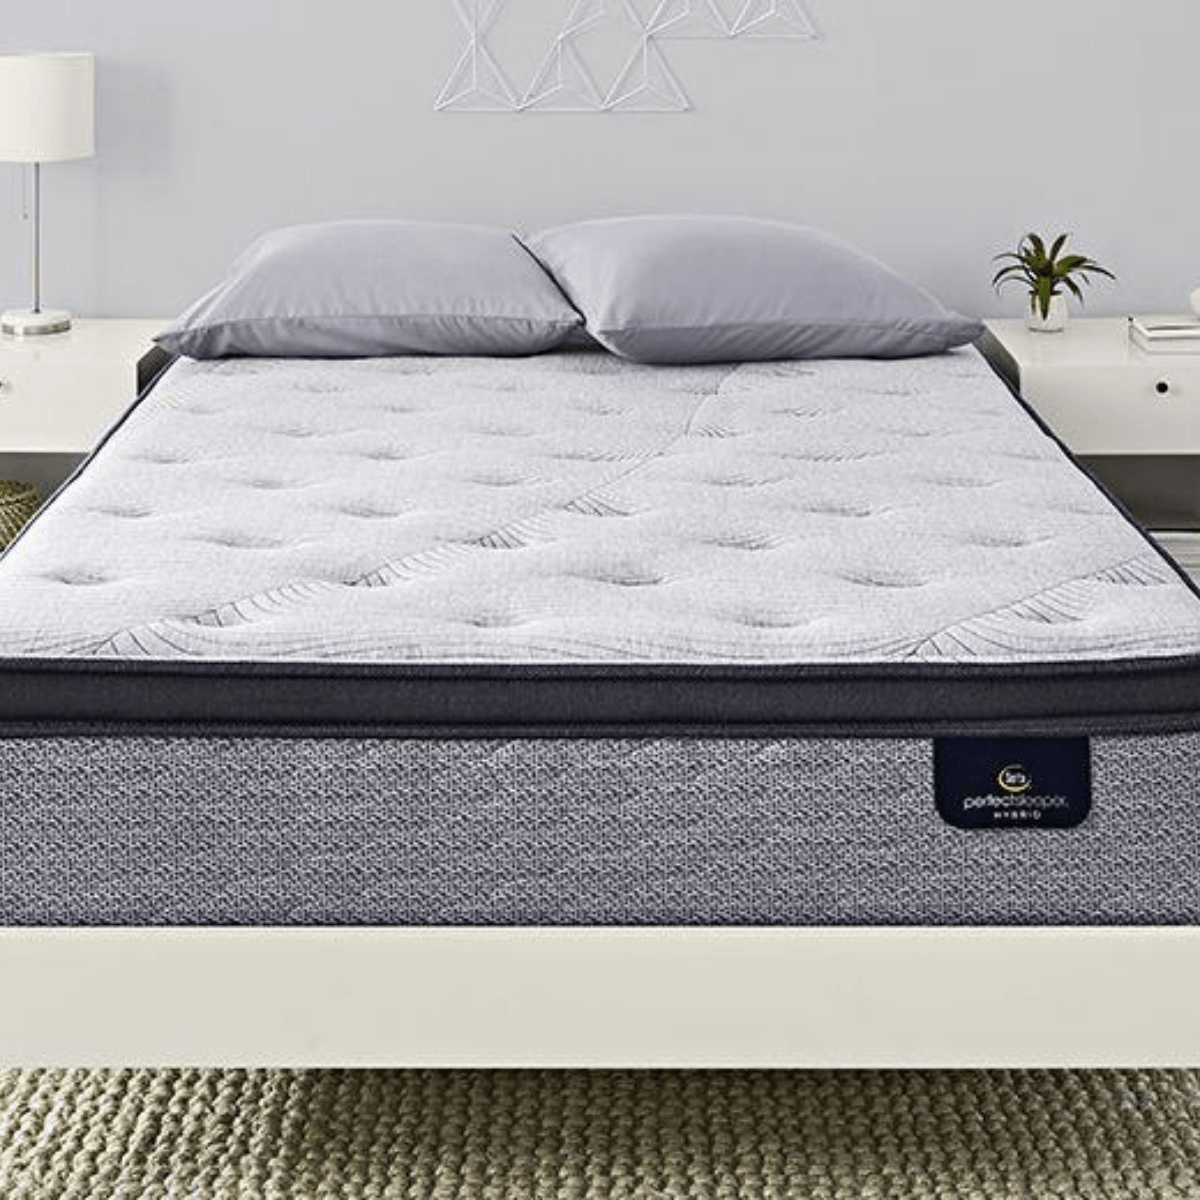 Serta Rosehill Plush Pillow Top American Mattress